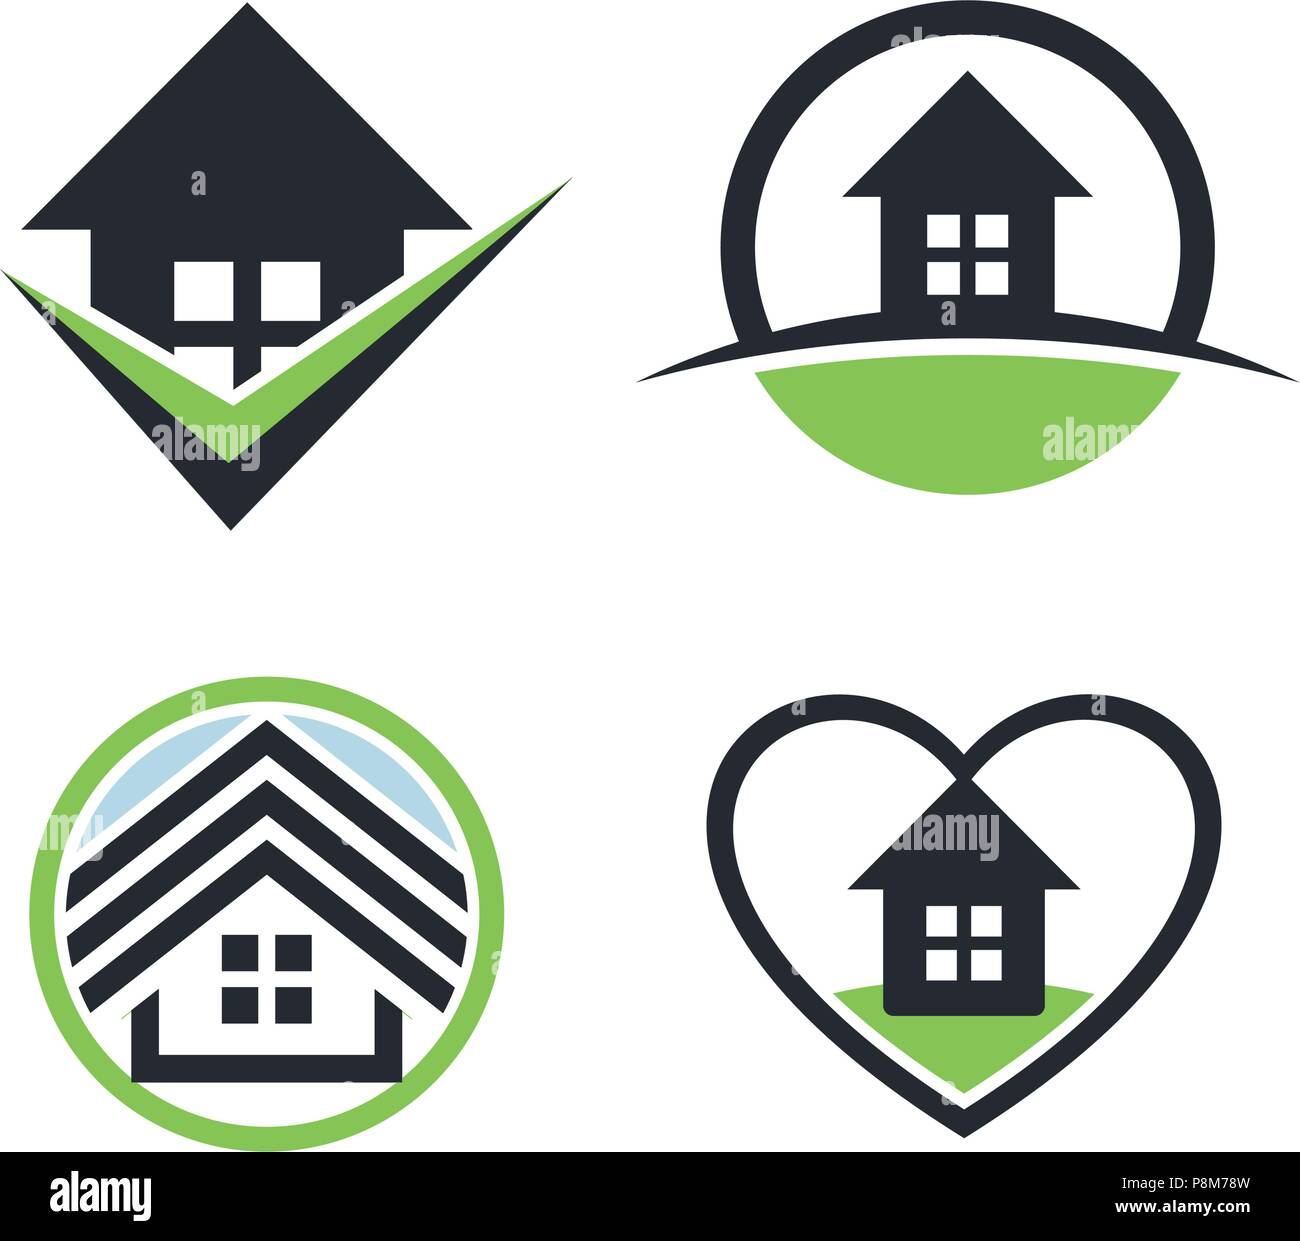 Real estate logo set.House rent icon. Sweet home collection. Heart icon.Estate sale logo. Round icon.Cosiness logo.Isolated vector.Graphic art. Building logo.Architectural construction logo.Tick icon. - Stock Image